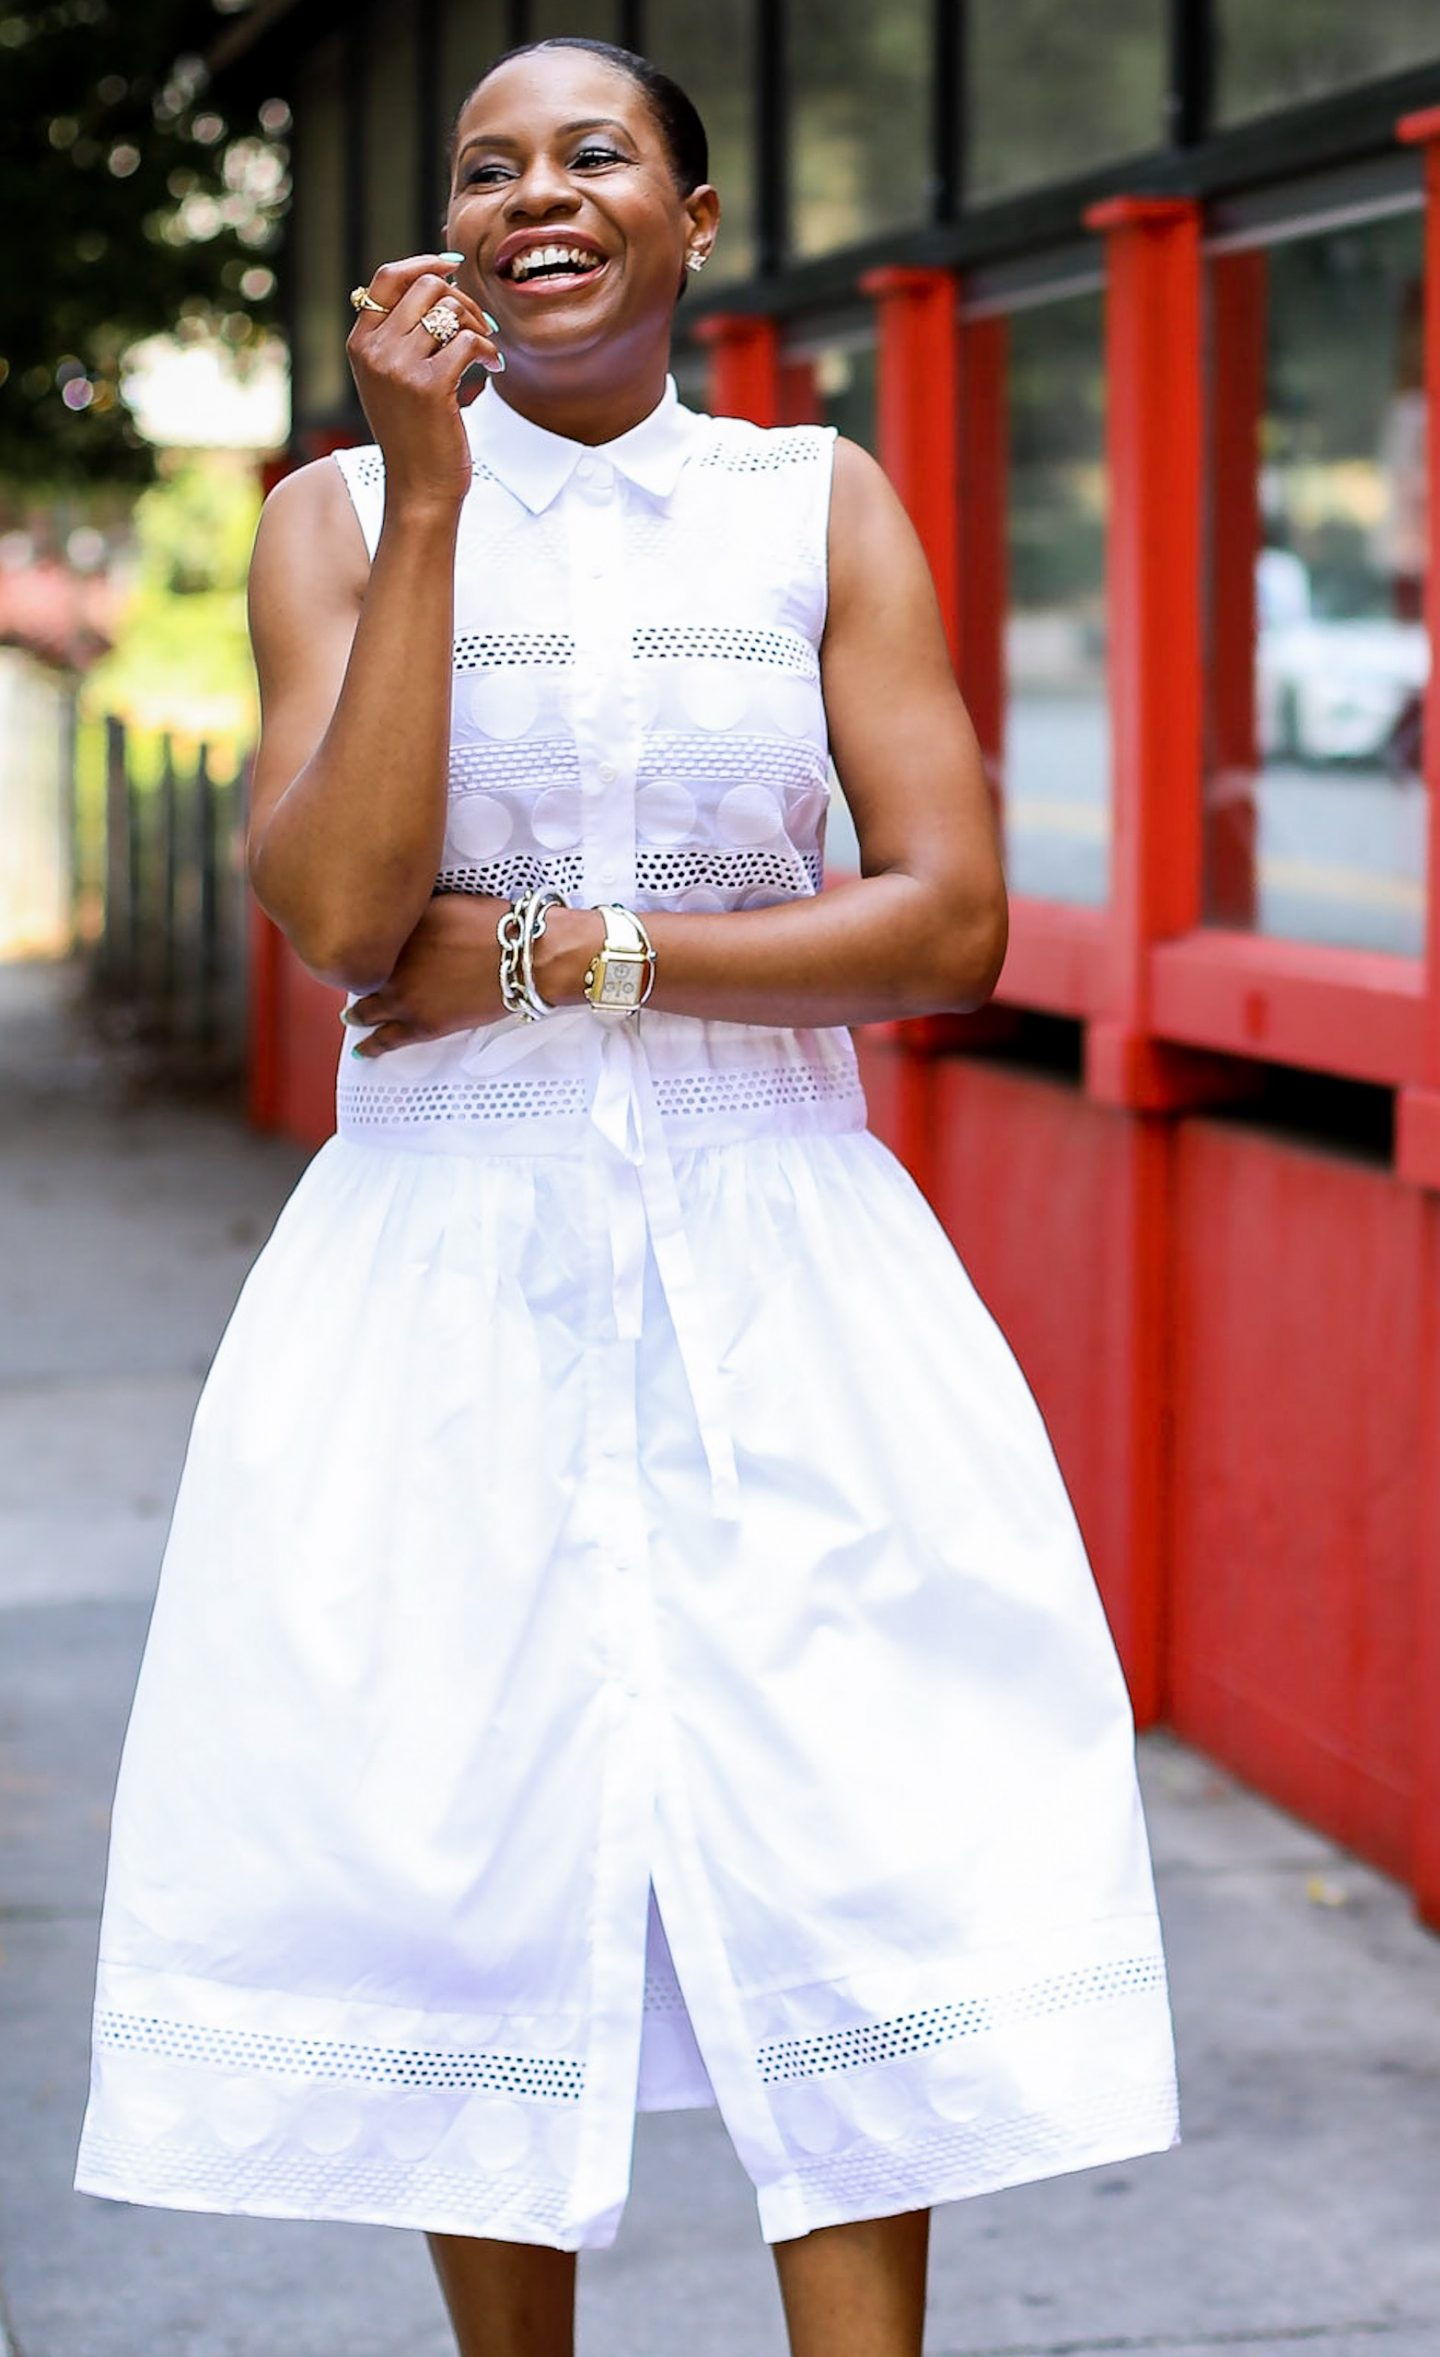 EVERYDAY WHITE NOW – 3 TIPS TO MAKING WHITE EVERYDAY WEAR